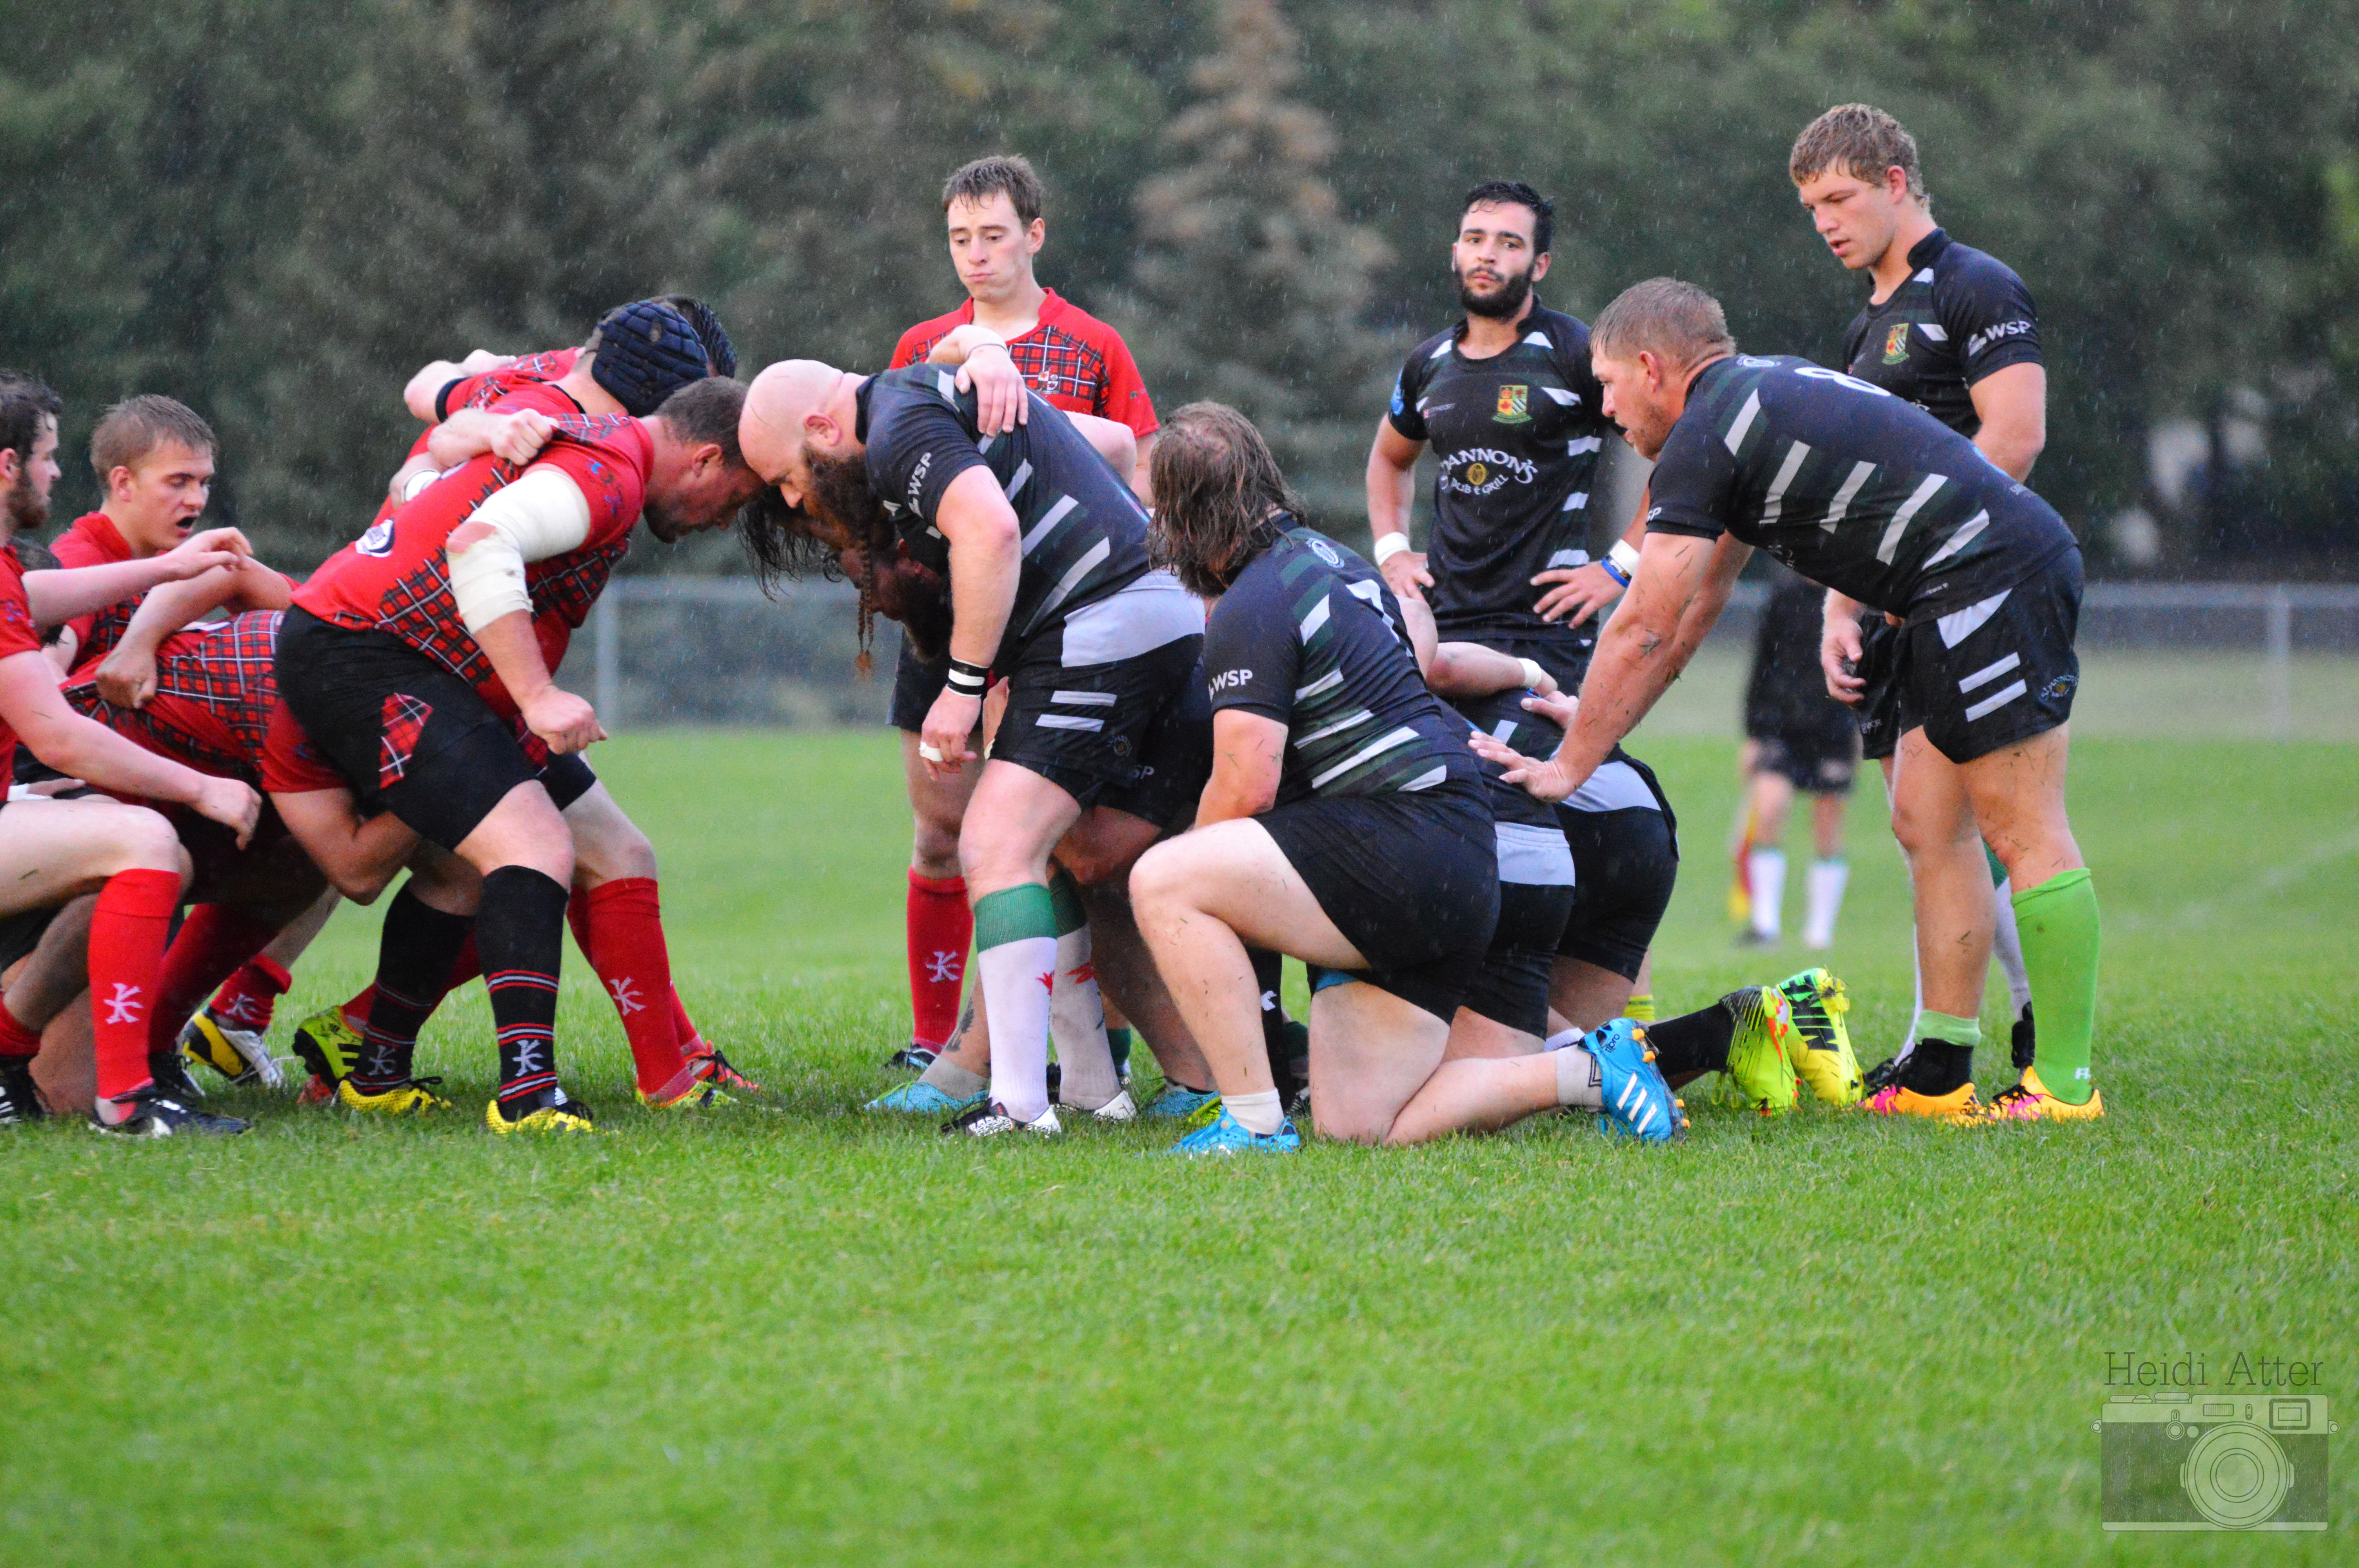 Rogues Men Vs. Highlanders Coaches Game Report - Image 2